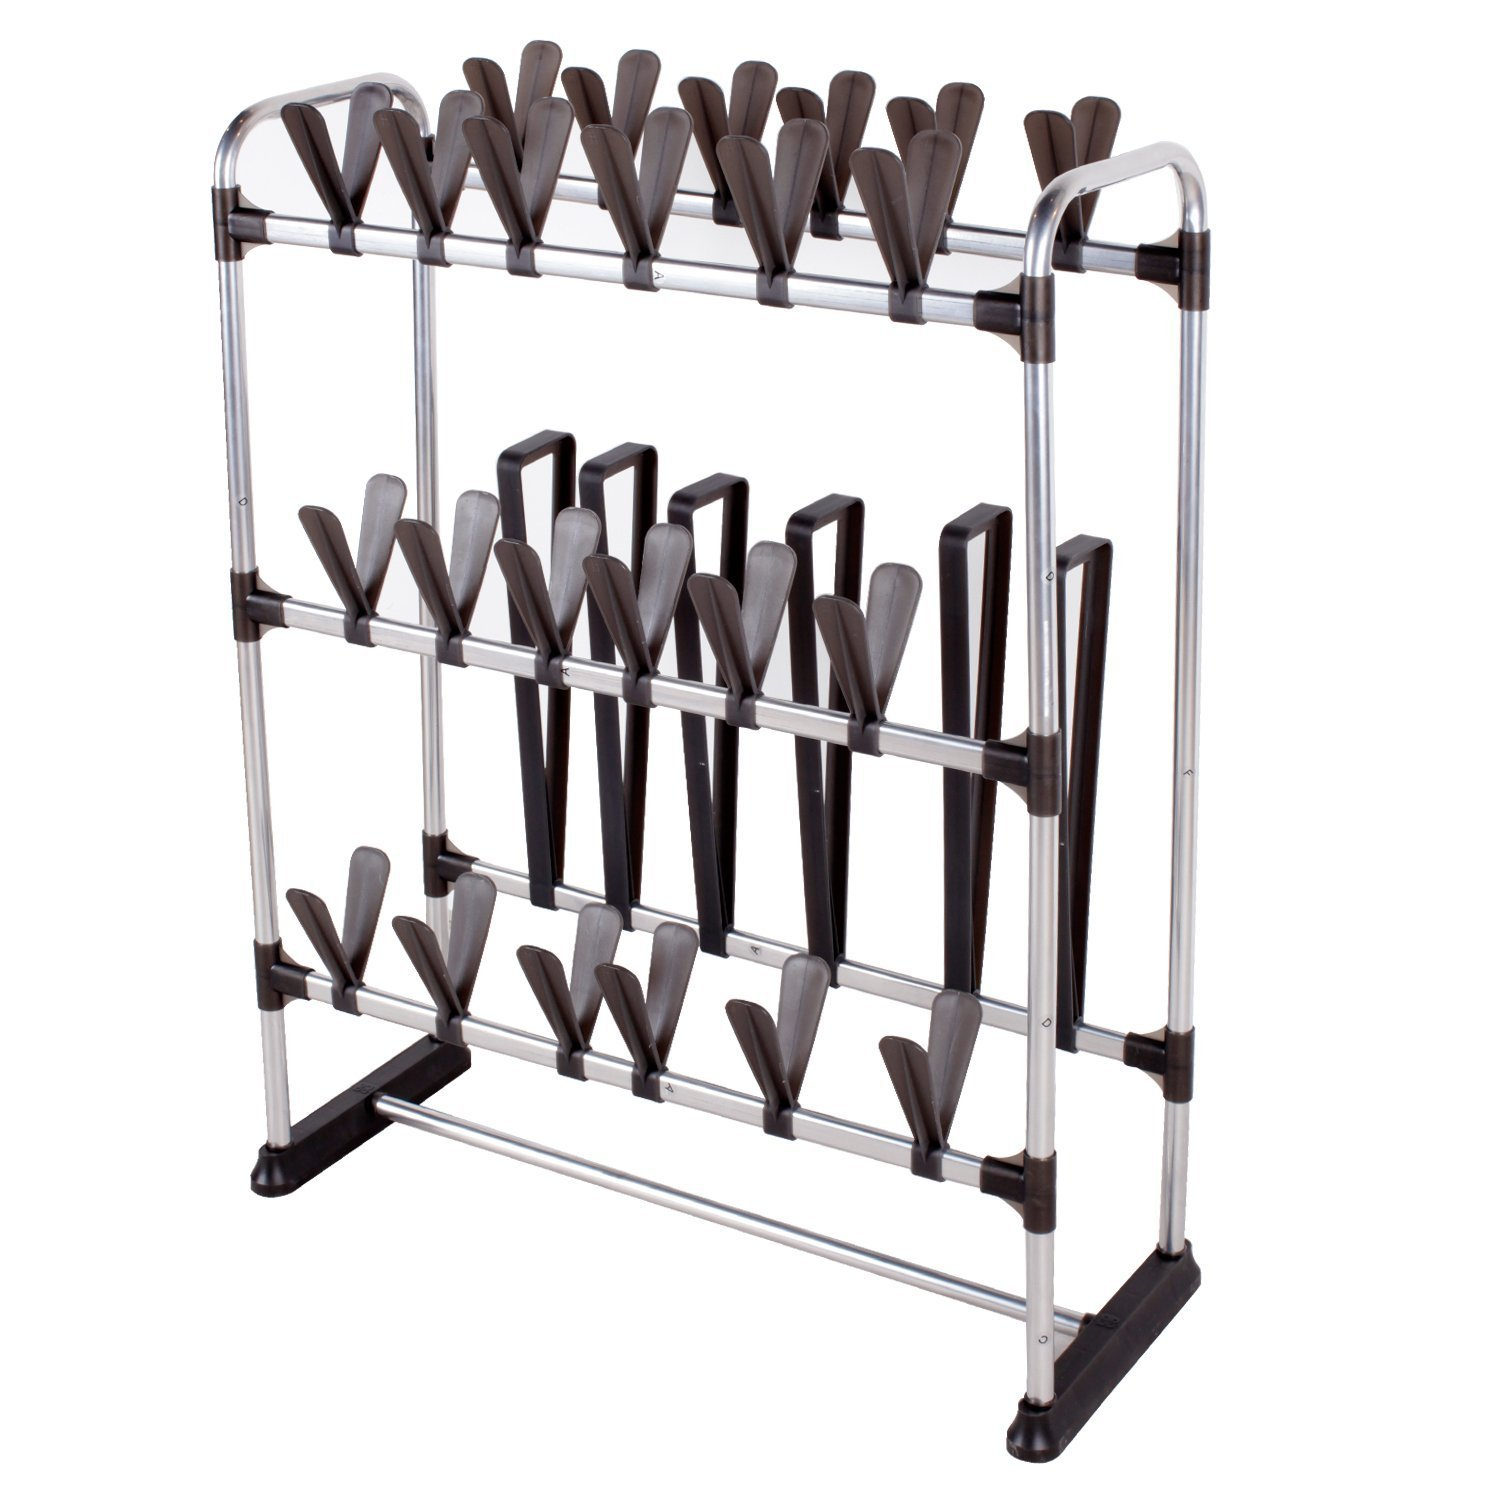 STORAGE MANIAC Space-Saving Standing Shoe Rack for 24 Pairs of Shoes and 3 Pairs of Boots